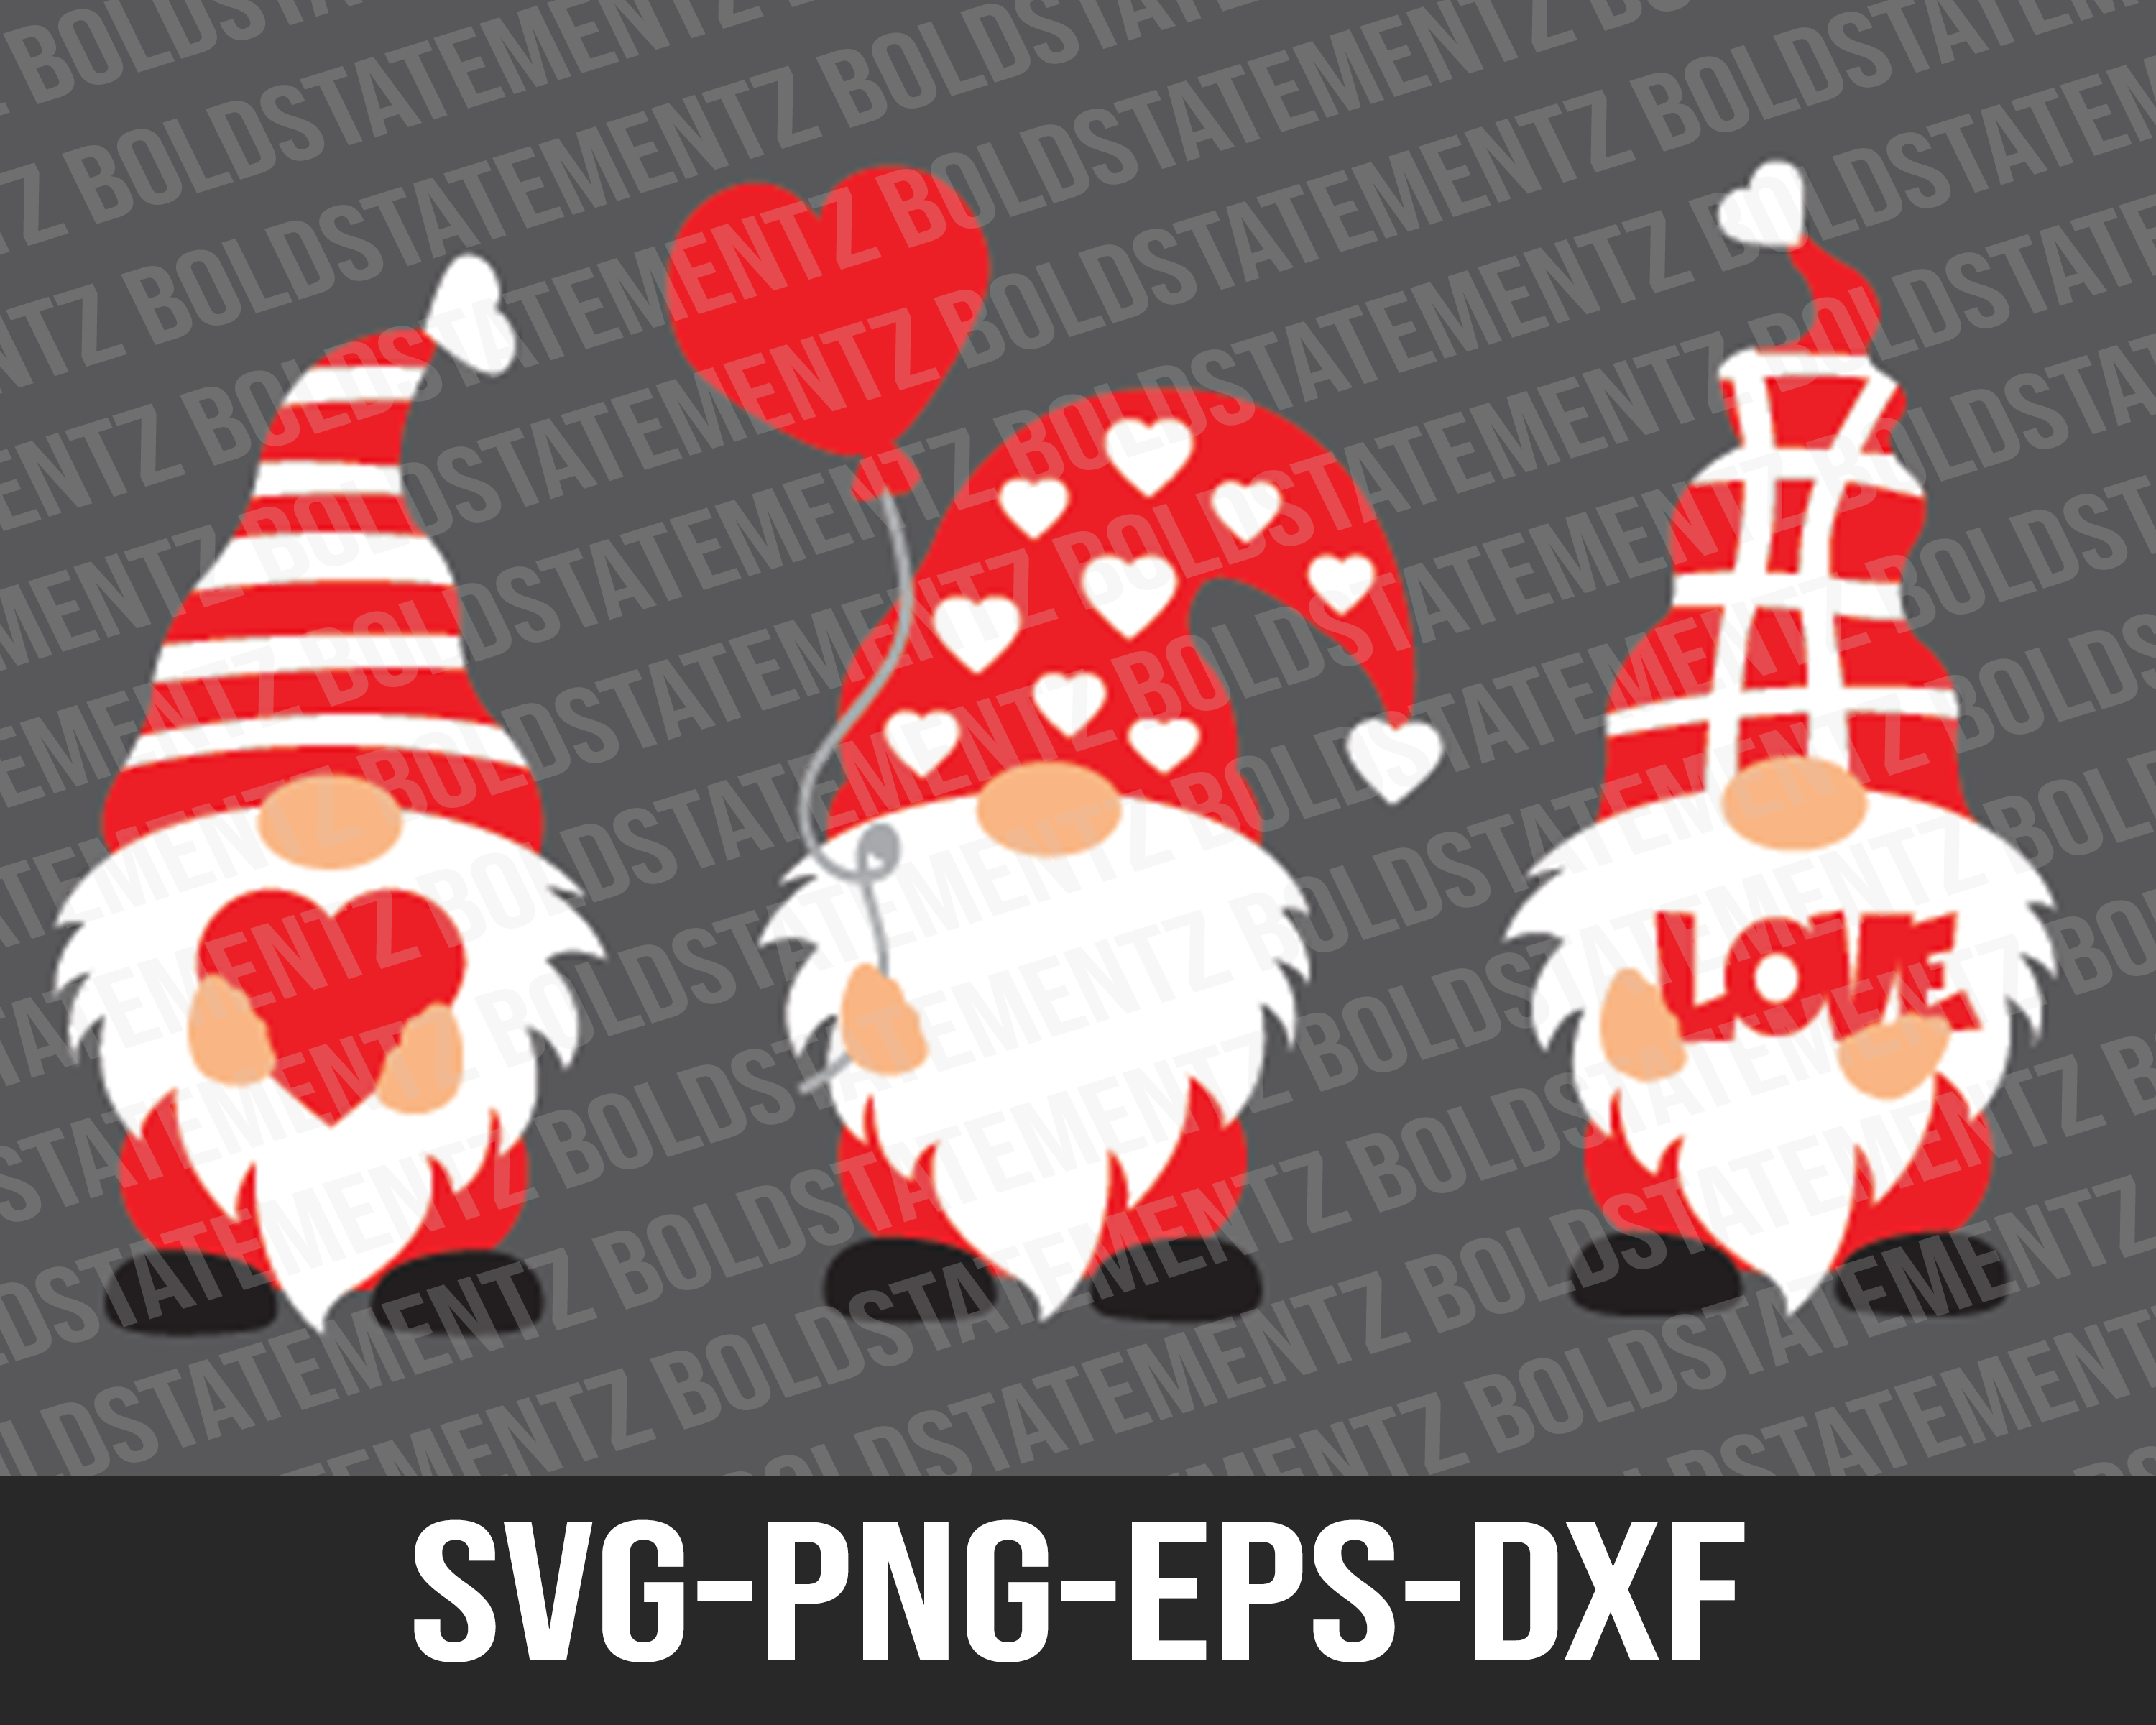 Cute Valentines Gnomes SVG | Valentines SVG | Gnomes SVG | SVG Cutting File for Cricut | SVG DXF PNG EPS